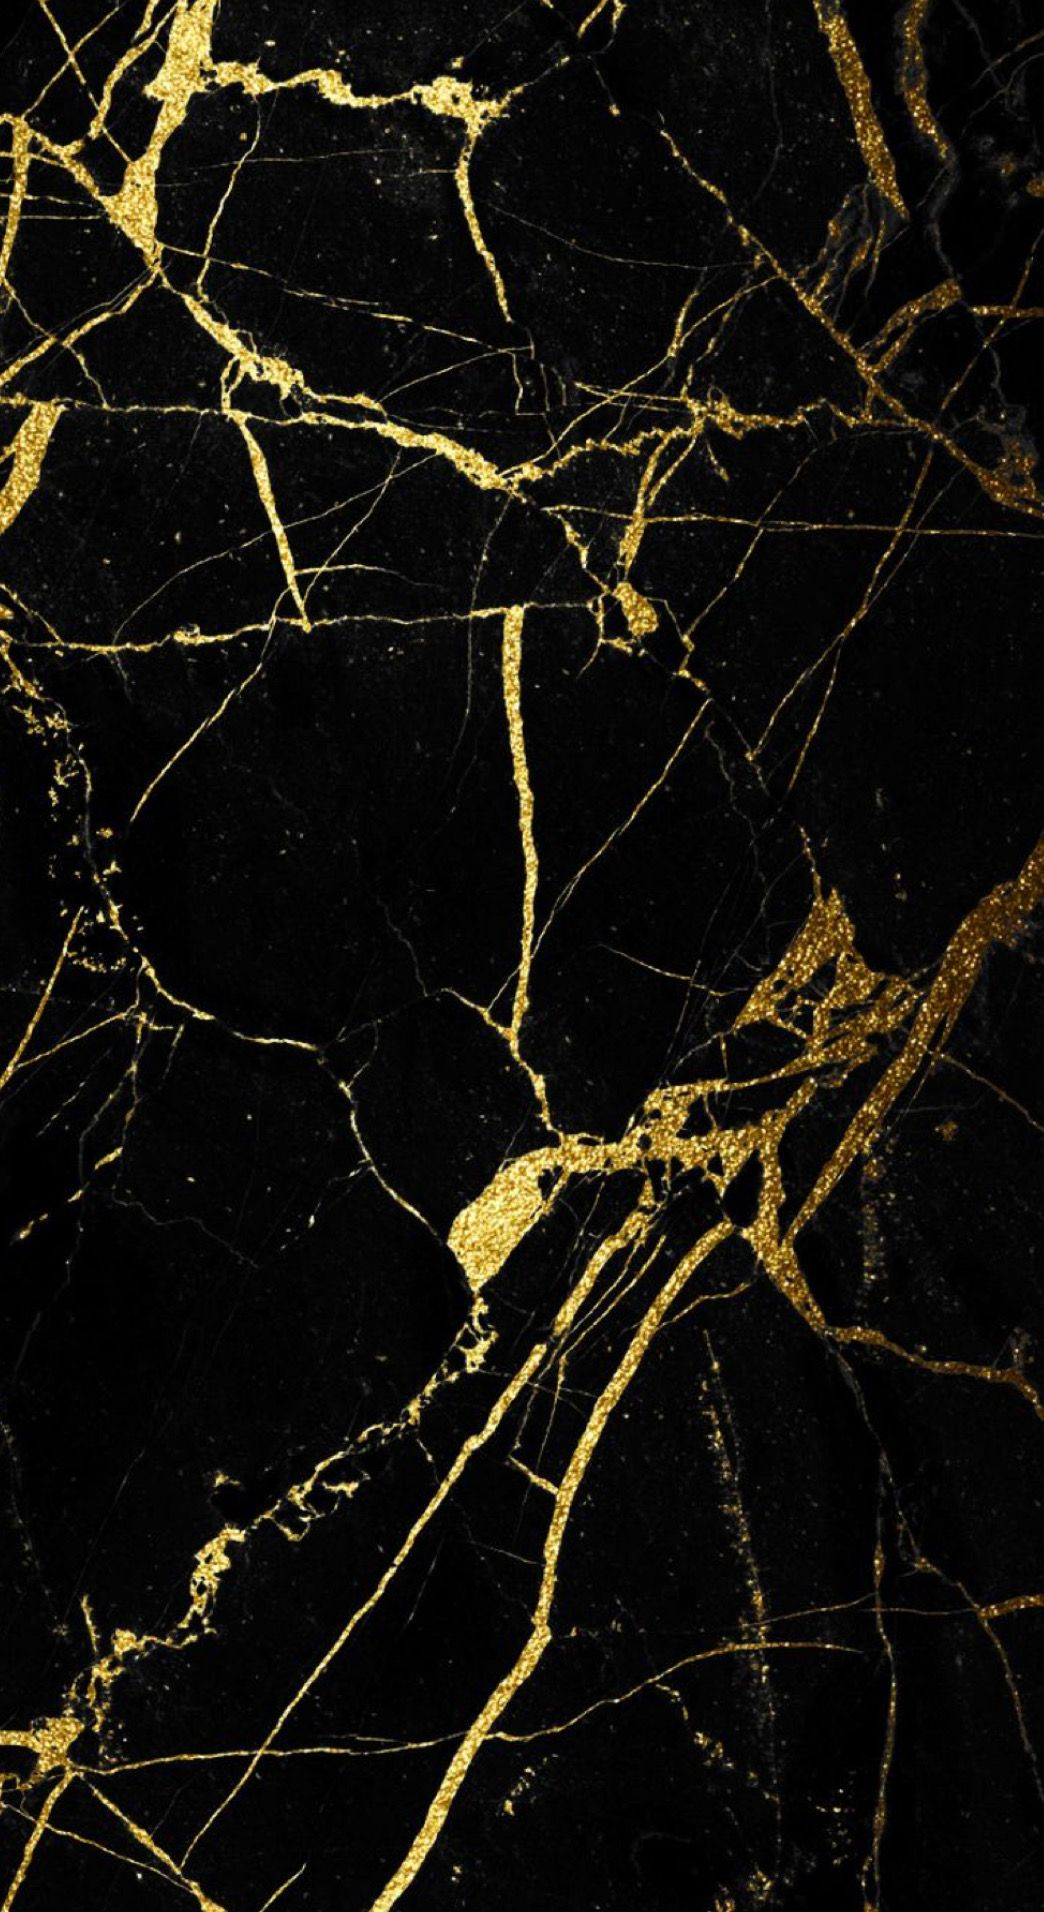 White Monochrome Black And White Marble Iphone Wallpaper Pinterest Marble Iphone Wallpaper Iphone Background Wallpaper